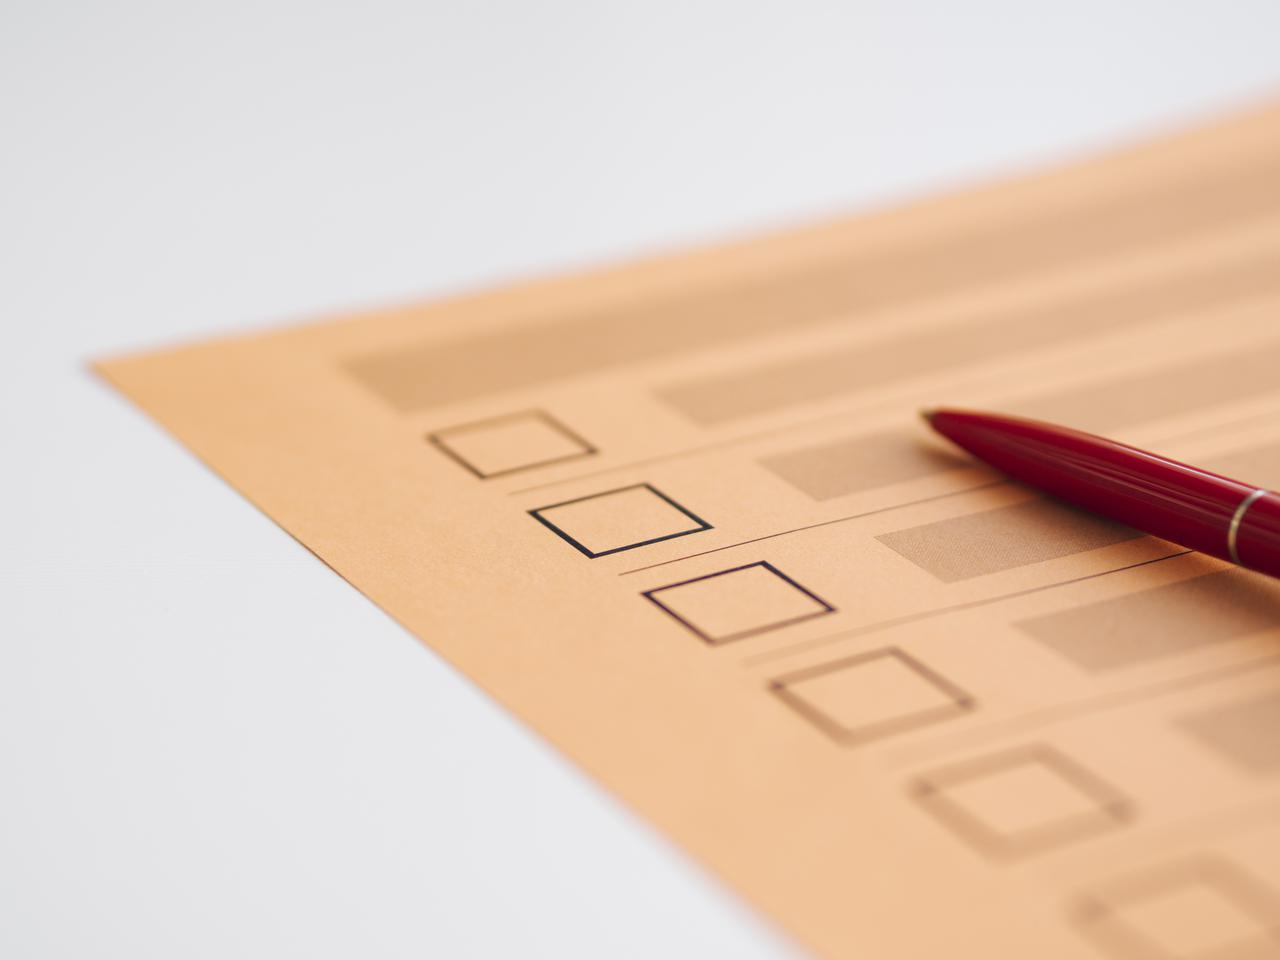 high-angle-uncompleted-voting-questionnaire-close-up.jpg